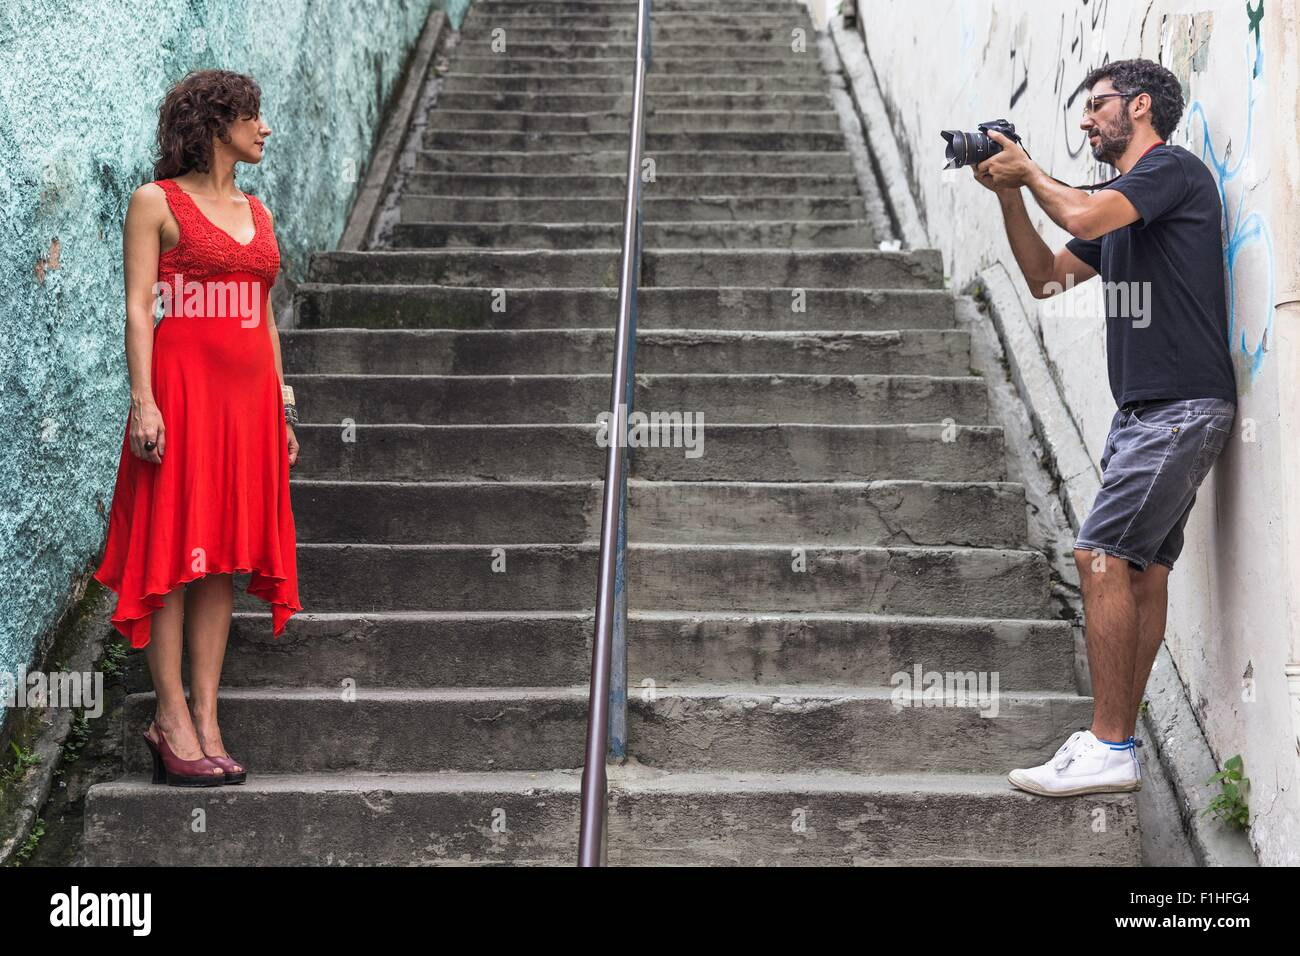 Behind the scenes of an urban fashion shoot with female model and male photographer - Stock Image